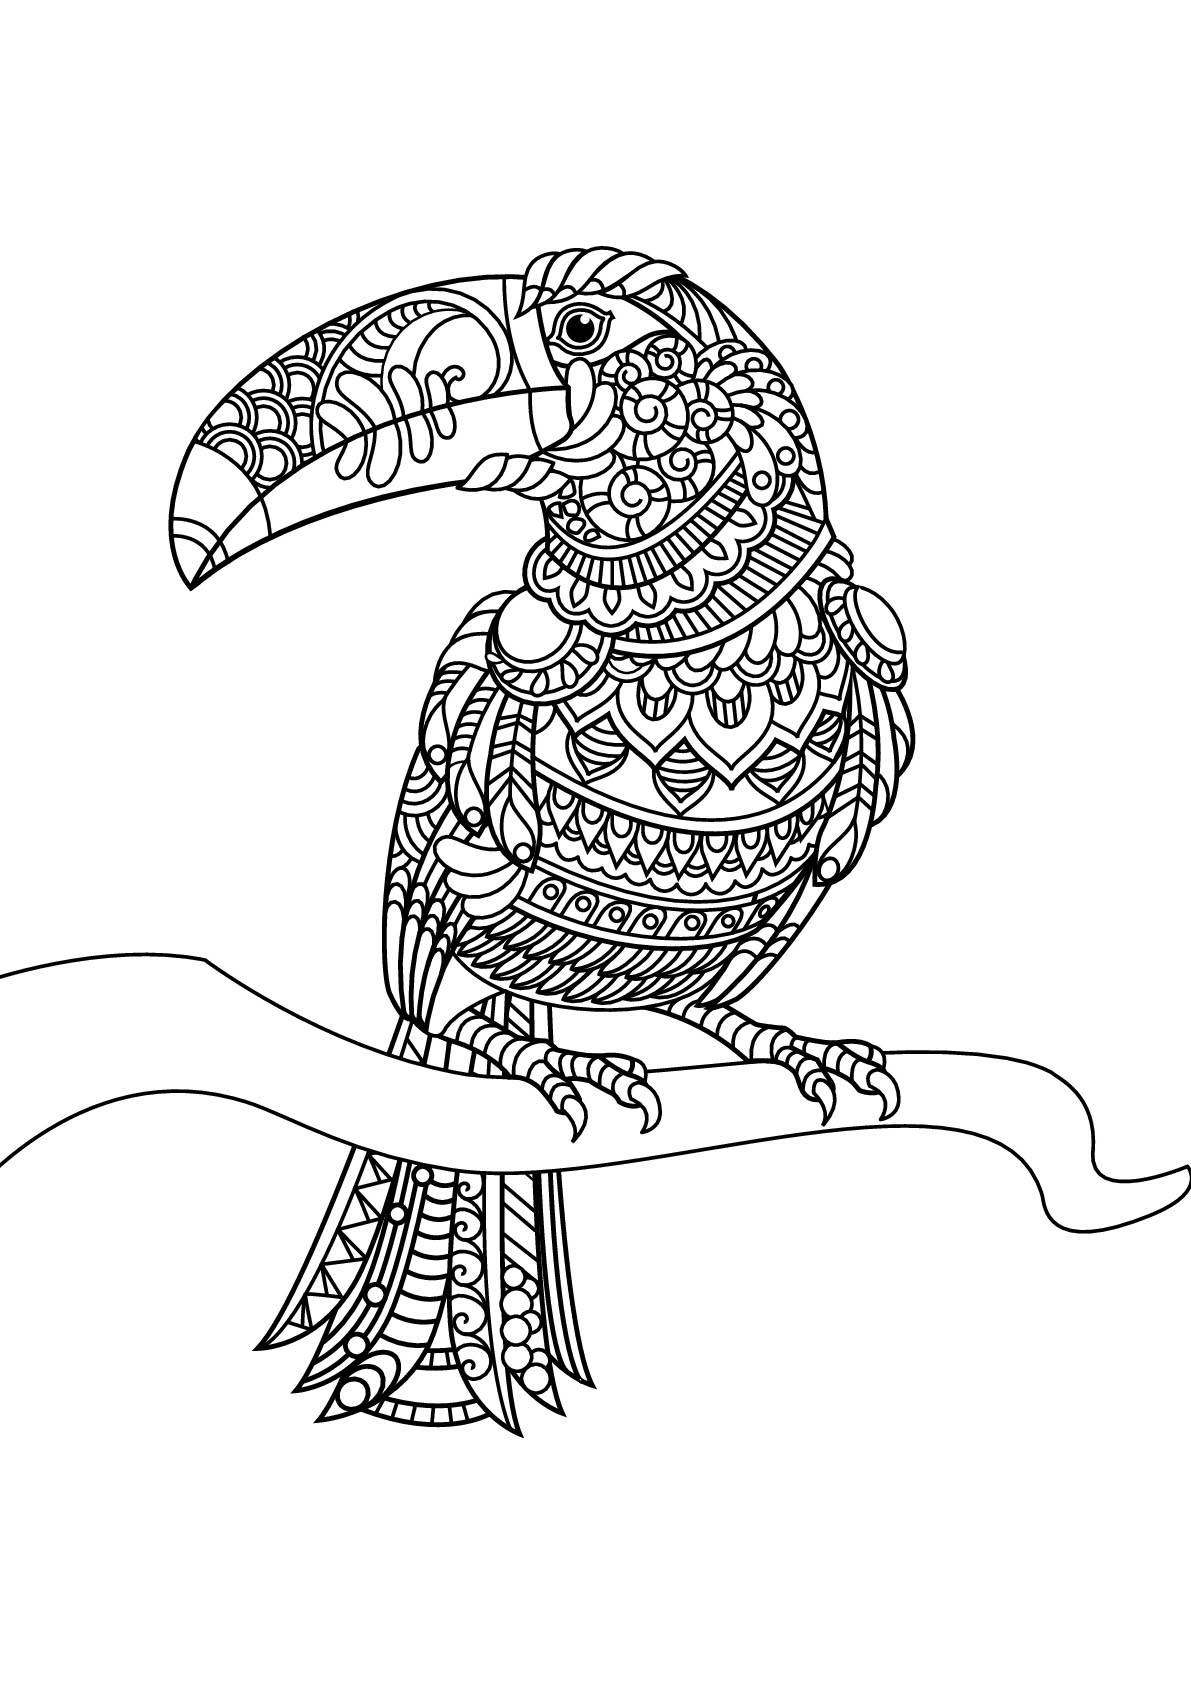 toucan coloring toucan coloring pages coloring pages to download and print coloring toucan 1 1